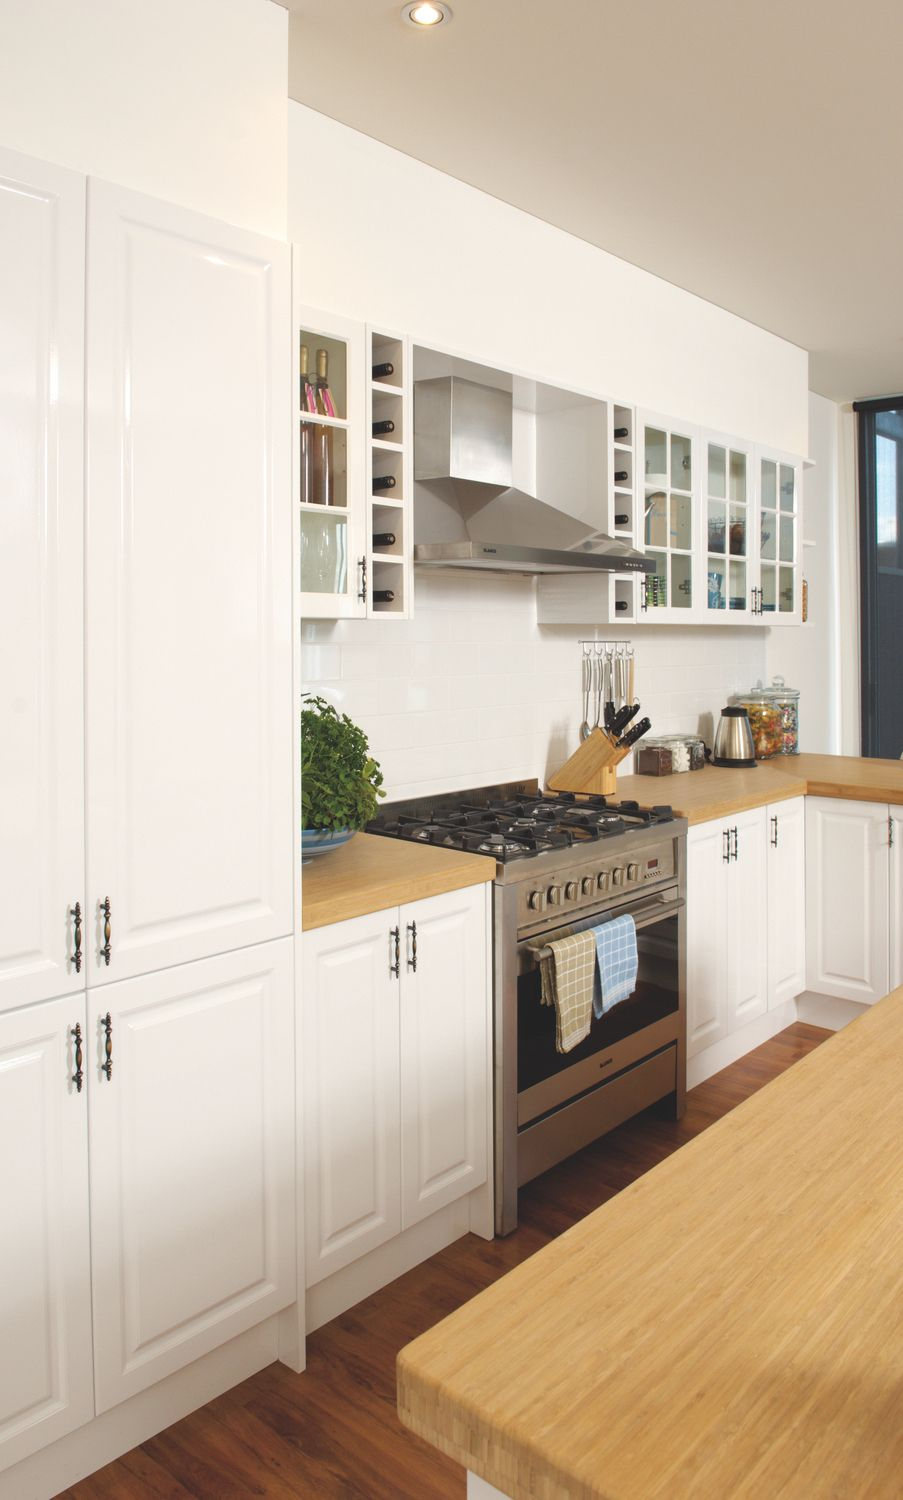 Flat Pack Kitchens >> Flat Pack Kitchens Gallery A Tradition Worth Keeping